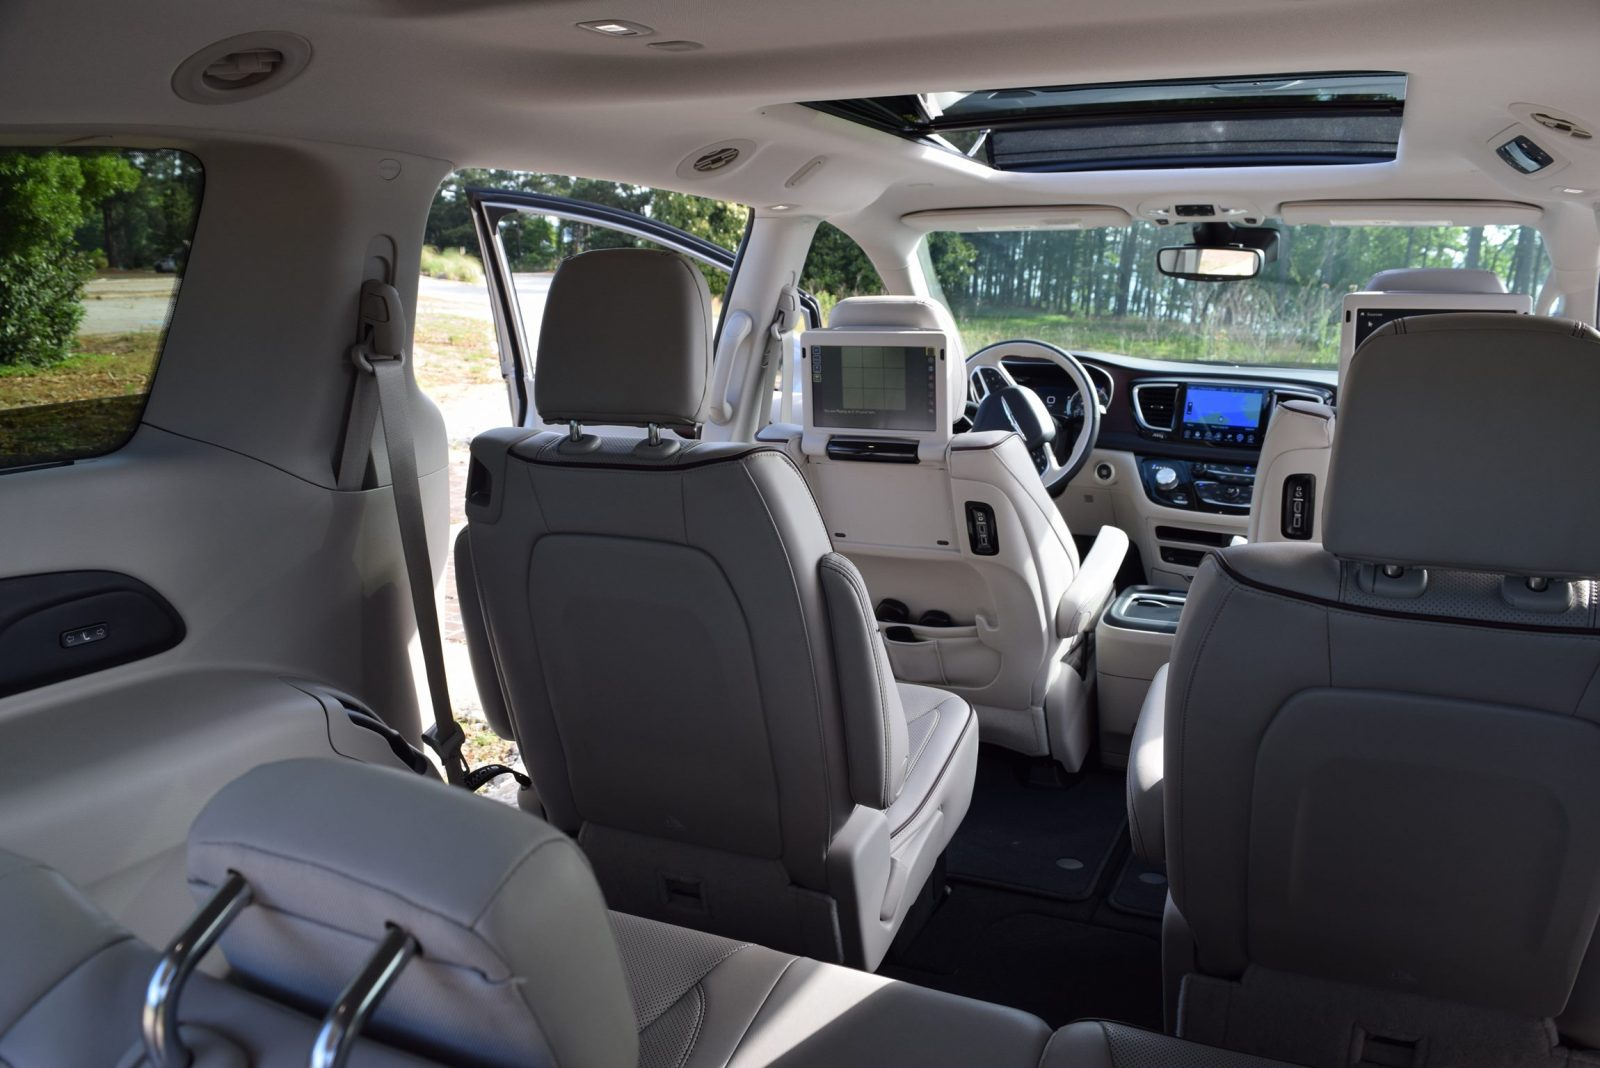 2017 Chrysler Pacifica Limited Interior Pictures To Pin On